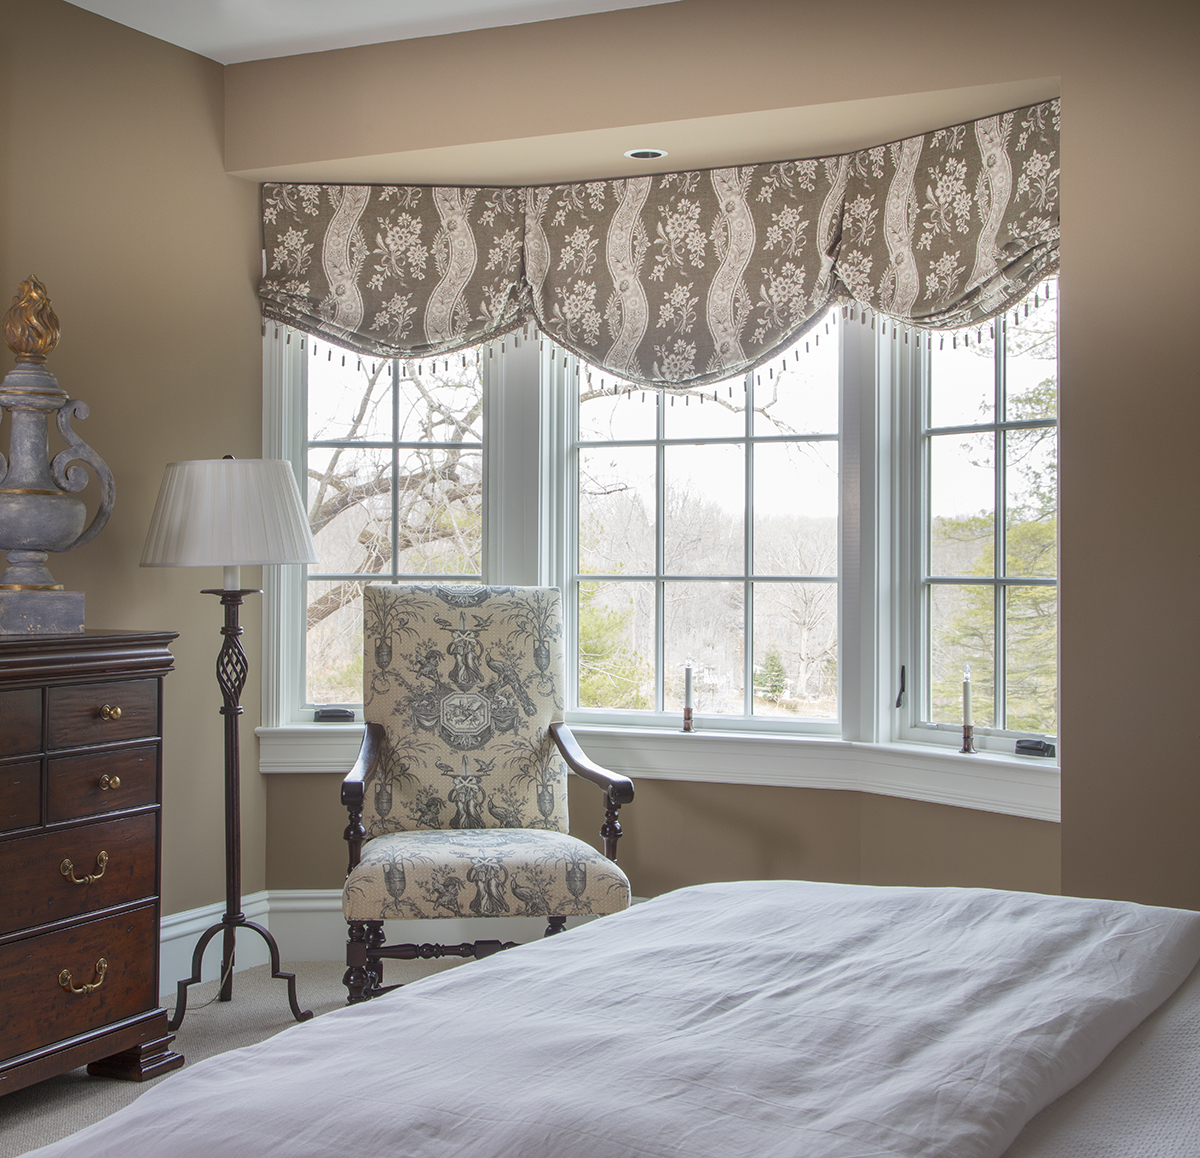 Masterpiece on the Severn White Bedroom